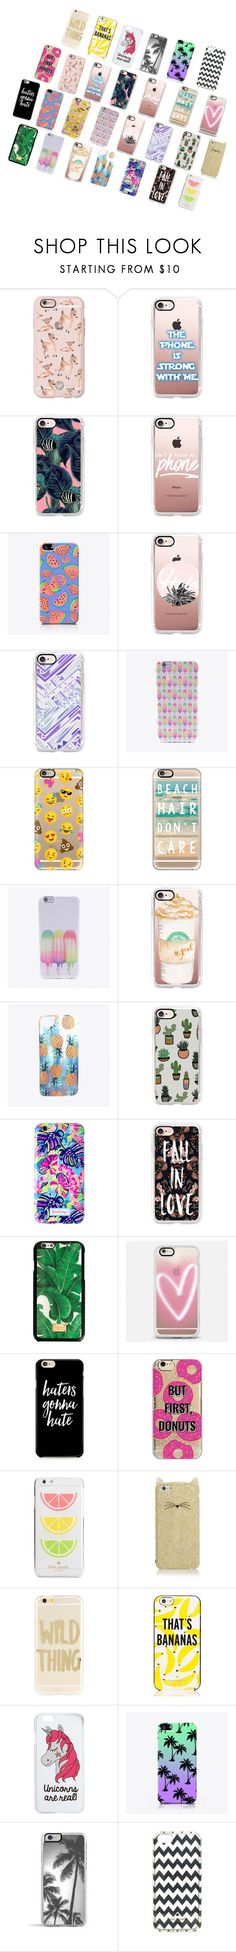 Cell Phone Cases - Cell Phone Cases - Phone Cases by emmeline7 ❤ liked on Polyvore featuring interior, interiors, interior design, home, home decor, interior decorating, Casetify, The Small Print., Nikki Strange and Lilly Pulitzer - Welcome to the Cell Phone Cases Store, where youll find great prices on a wide range of different cases for your cell phone (IPhone - Samsung) - Welcome to the Cell Phone Cases Store, where you'll find great prices on a wide range of different cases for you...